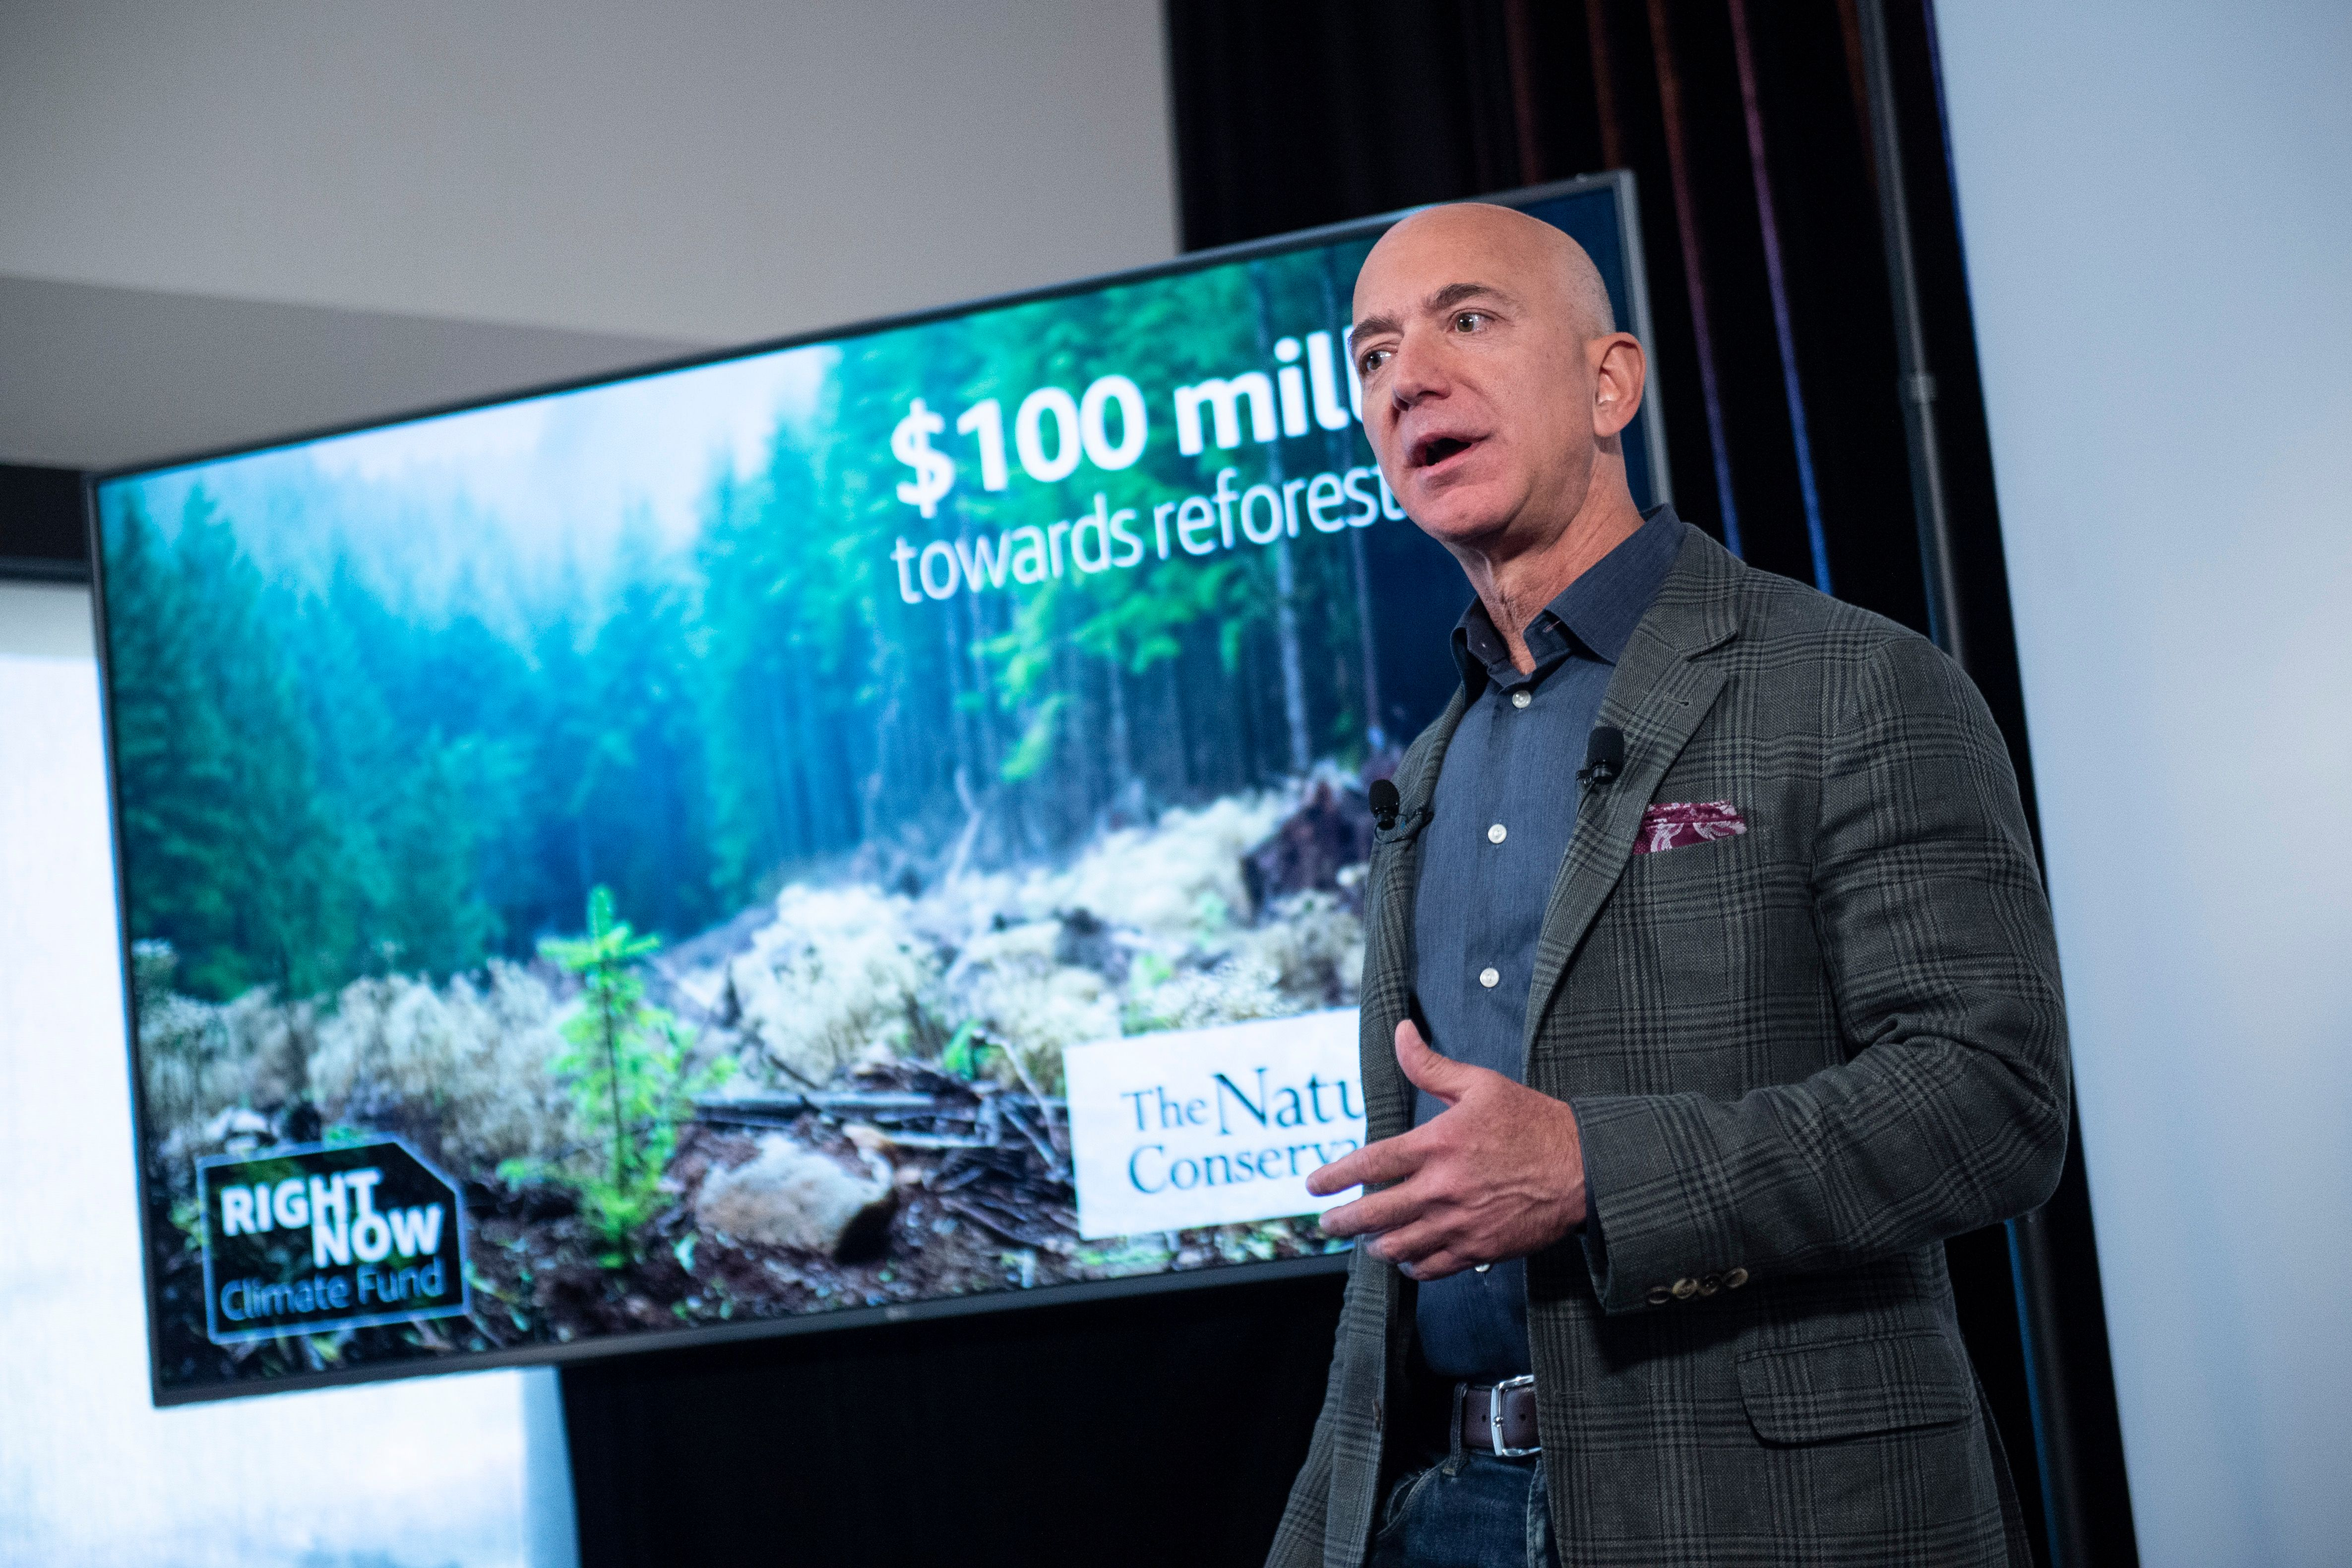 """Amazon founder Jeff Bezos speaks onstage in front of a screen showing a wooded landscape and the words """"$100 million."""""""